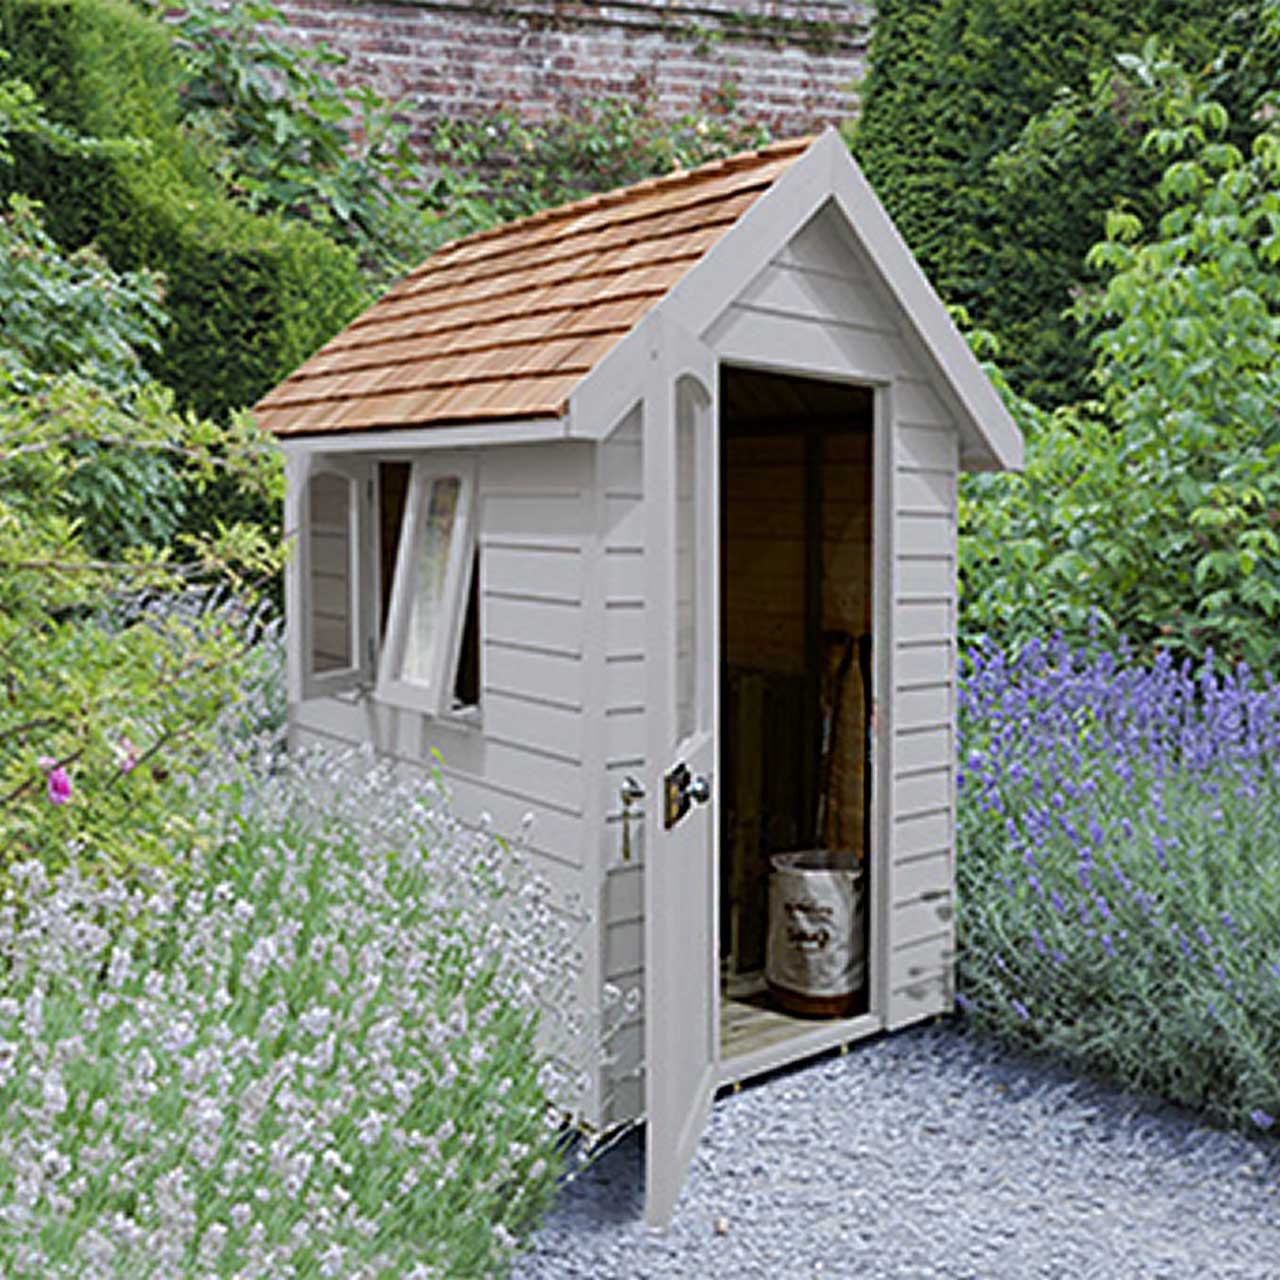 Redwood Lap Forest Retreat 6×4 Shed – Pebble Grey - Installed